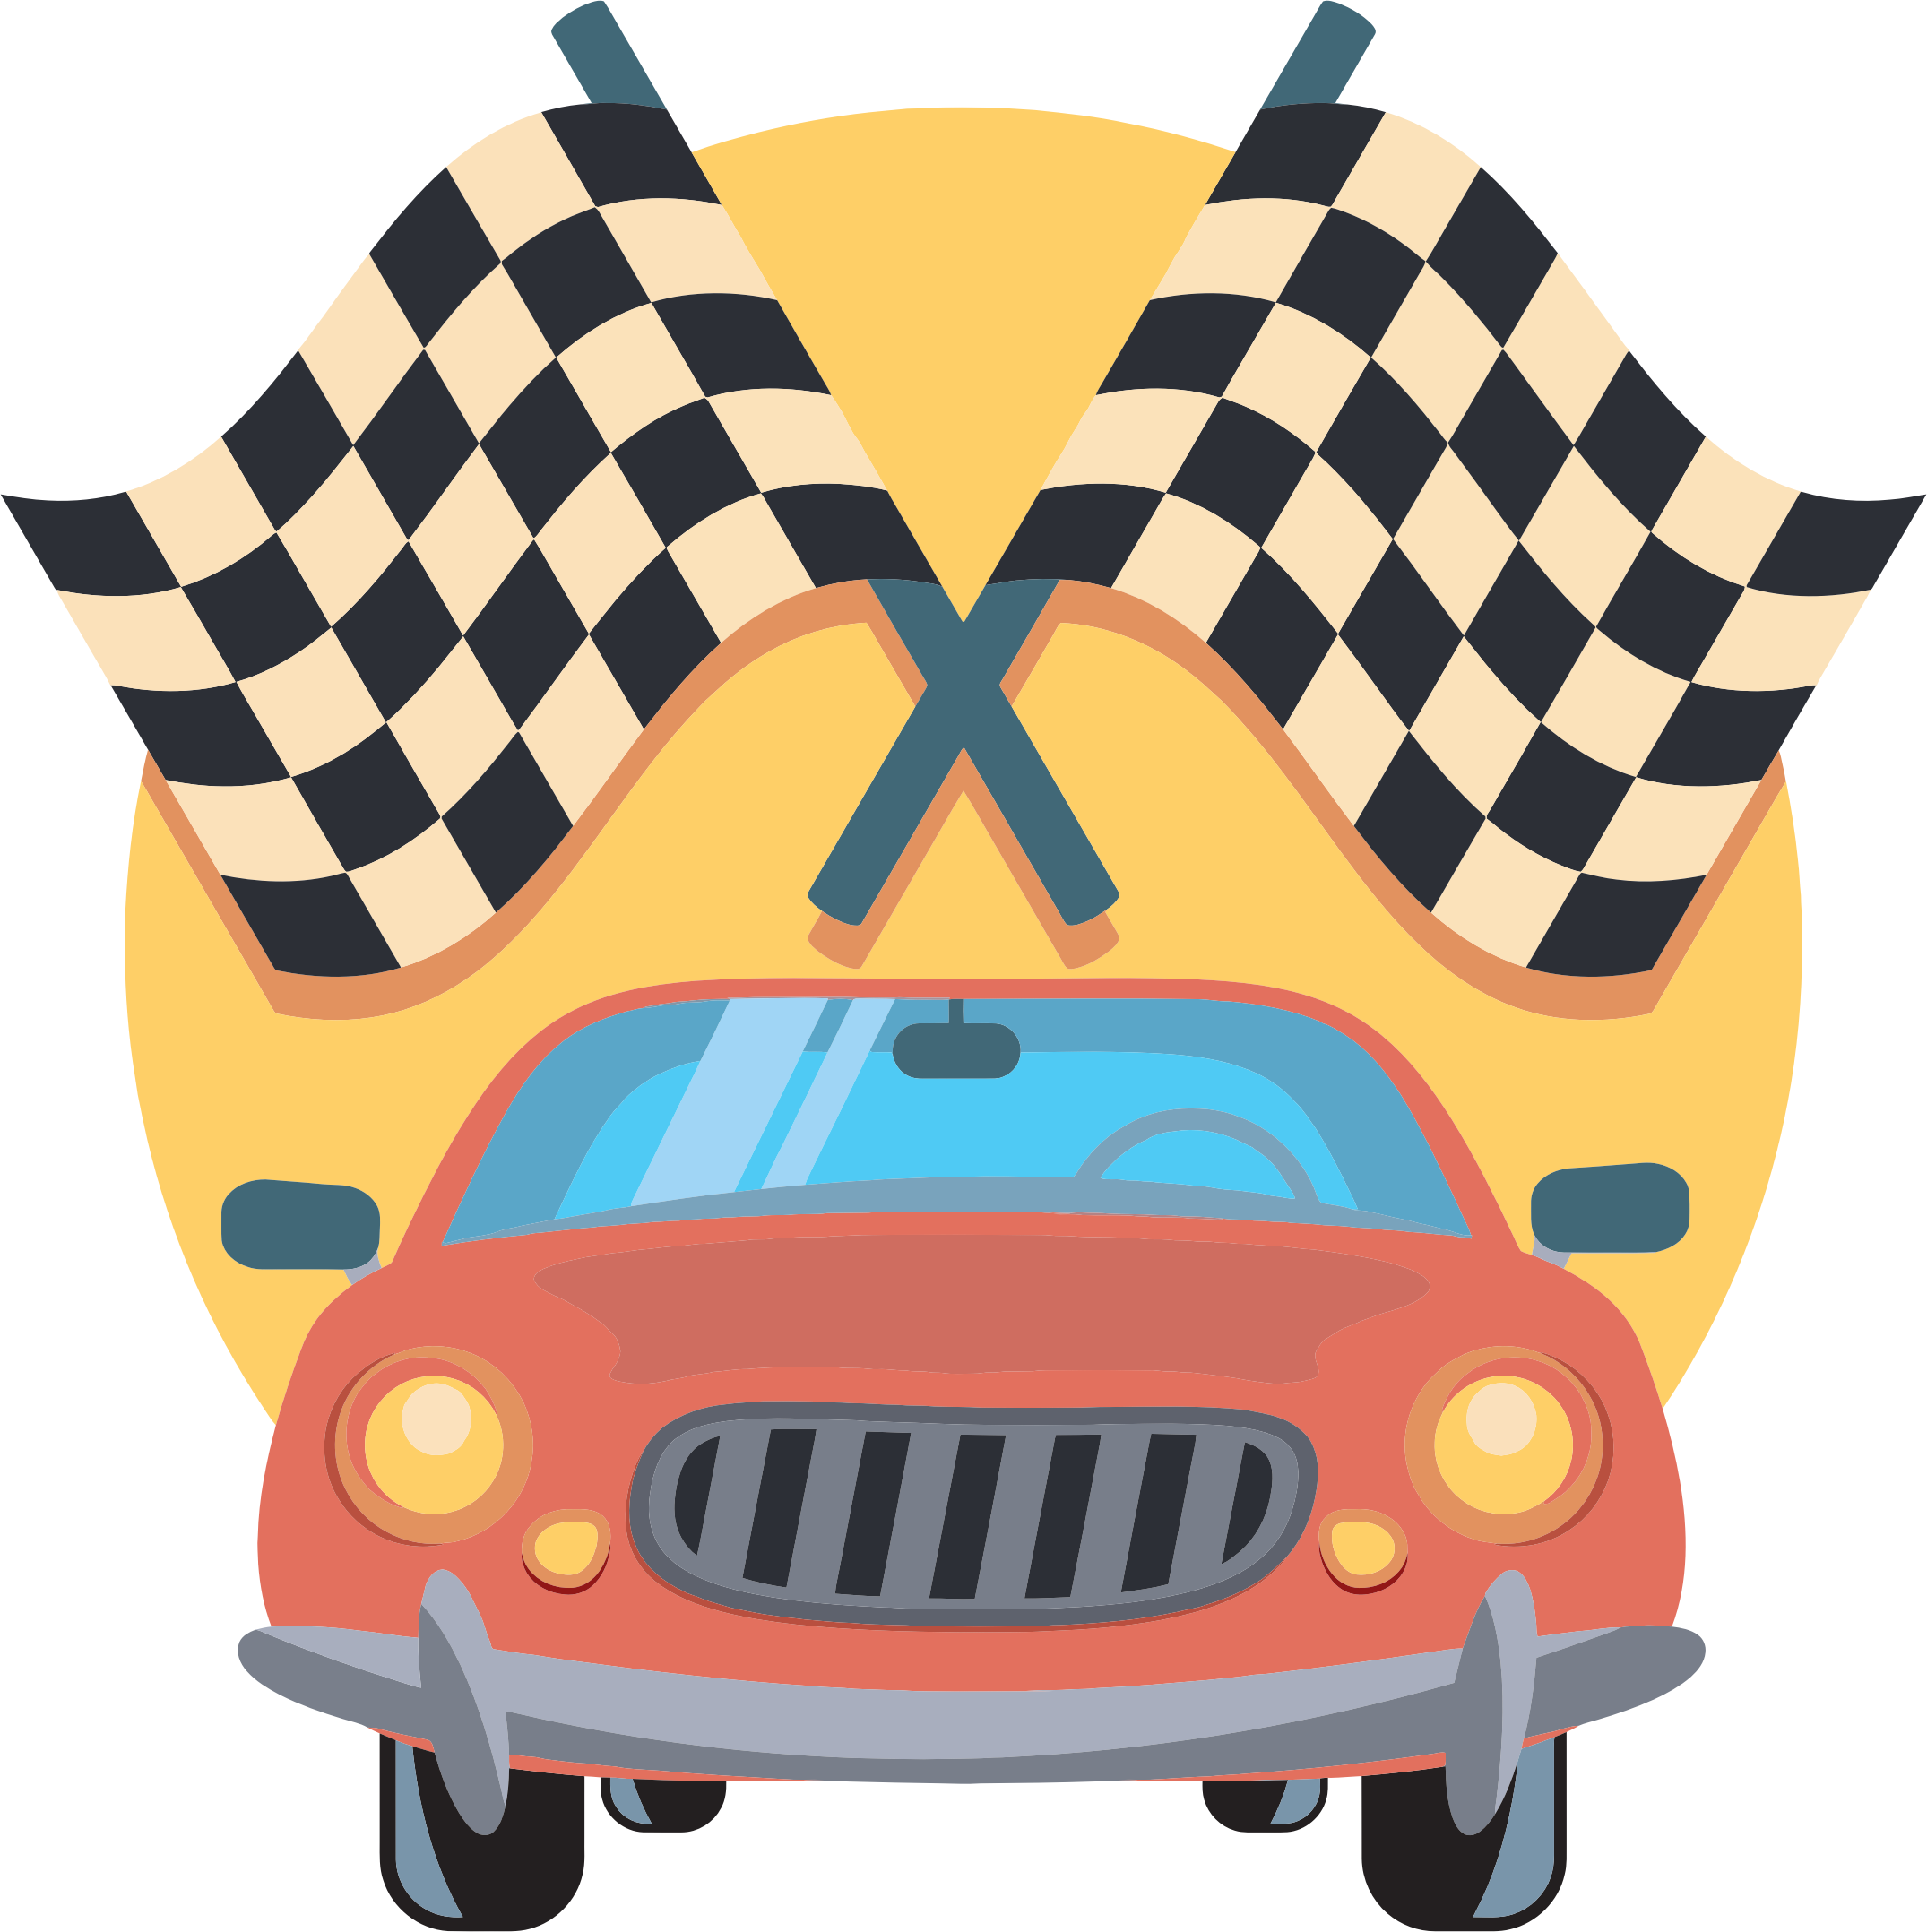 Race Car clipart automobile Clipart IMAGE Icon (PNG) Flags